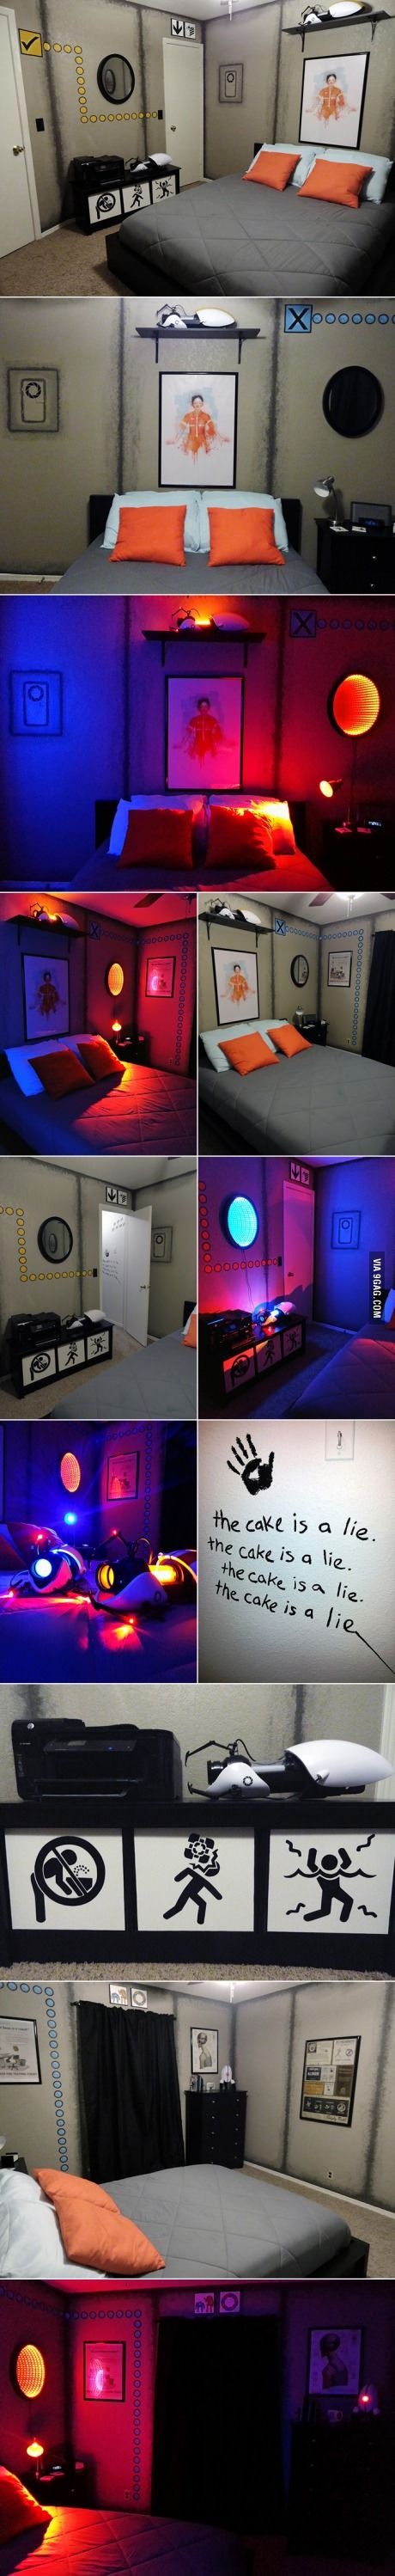 A better collage of that Portal themed bedroom. Love this!